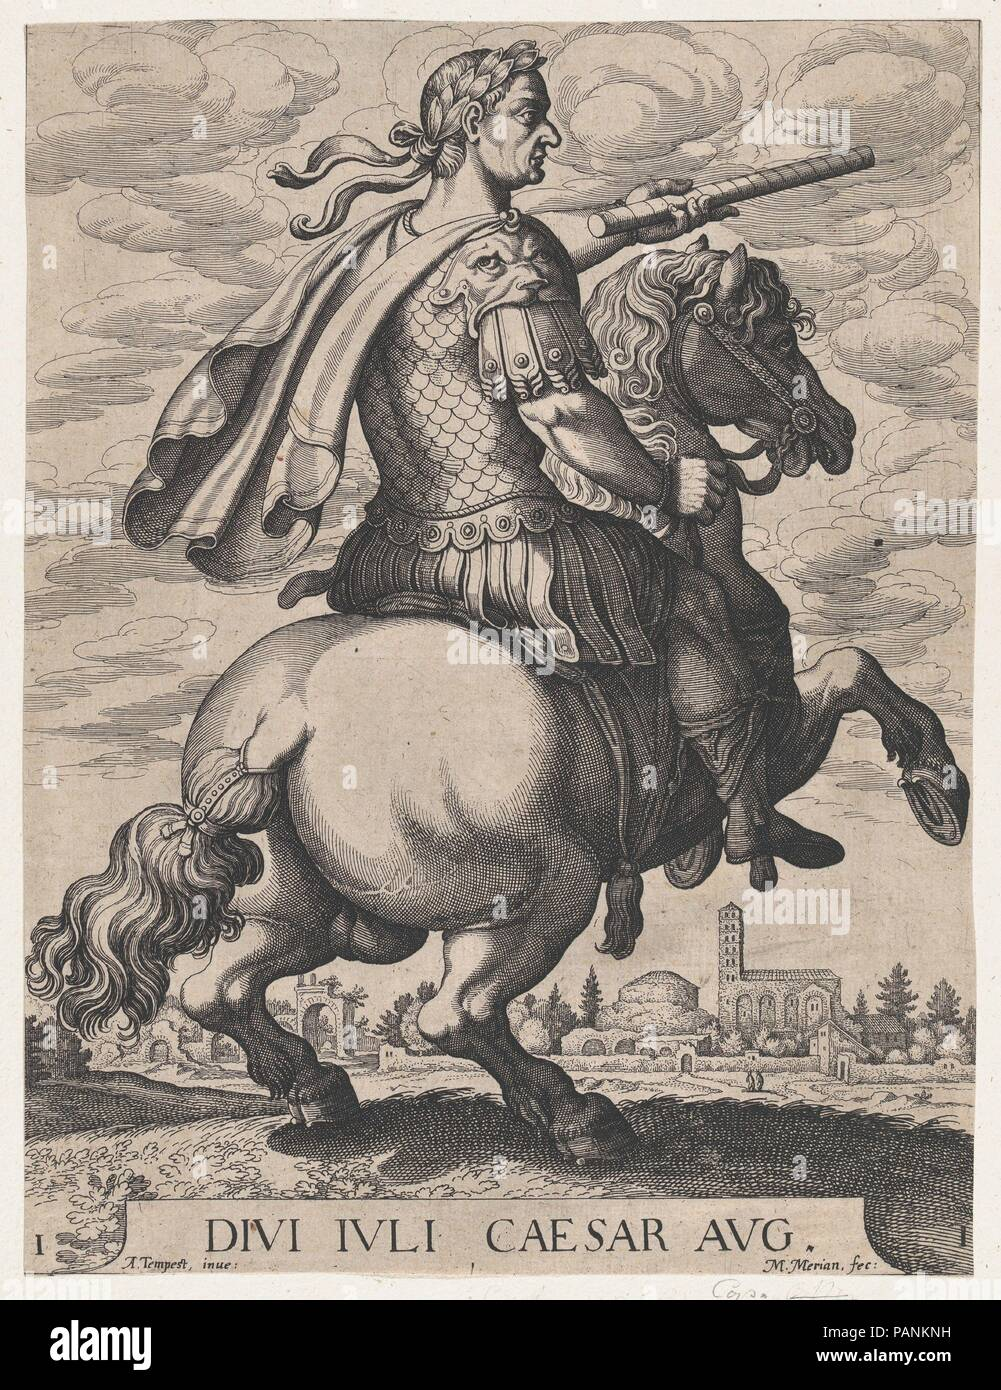 Plate 1: Emperor Julius Caesar on Horseback, from ' The First Twelve Roman Caesars', after Tempesta. Artist: Matthäus Merian the Elder (Swiss, Basel 1593-1650 Schwalbach); After Antonio Tempesta (Italian, Florence 1555-1630 Rome). Dimensions: Sheet: 11 13/16 × 8 7/8 in. (30 × 22.5 cm). Date: 1610-50. Museum: Metropolitan Museum of Art, New York, USA. Stock Photo